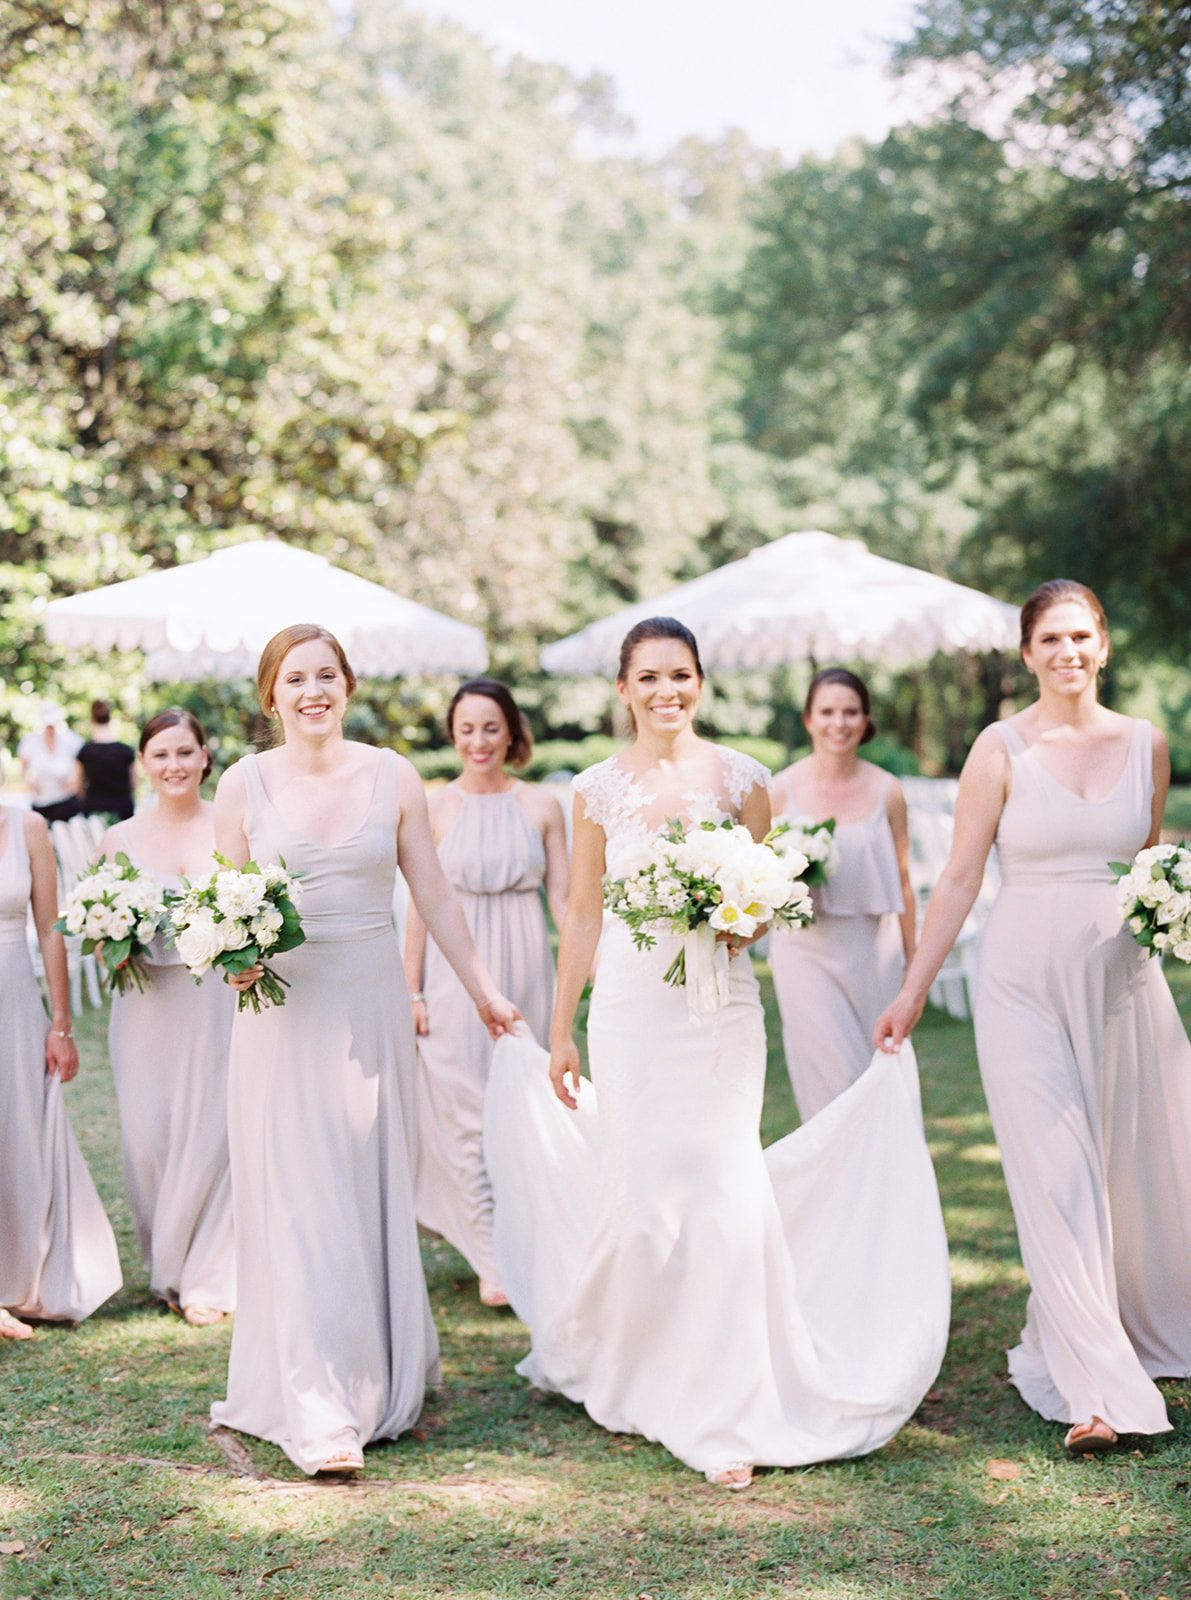 A Romantic Al Fresco Wedding Overflowing With Southern Charm At Wavering Place Southern Wedding Inspiration Southern Wedding Spring Wedding [ 1600 x 1191 Pixel ]